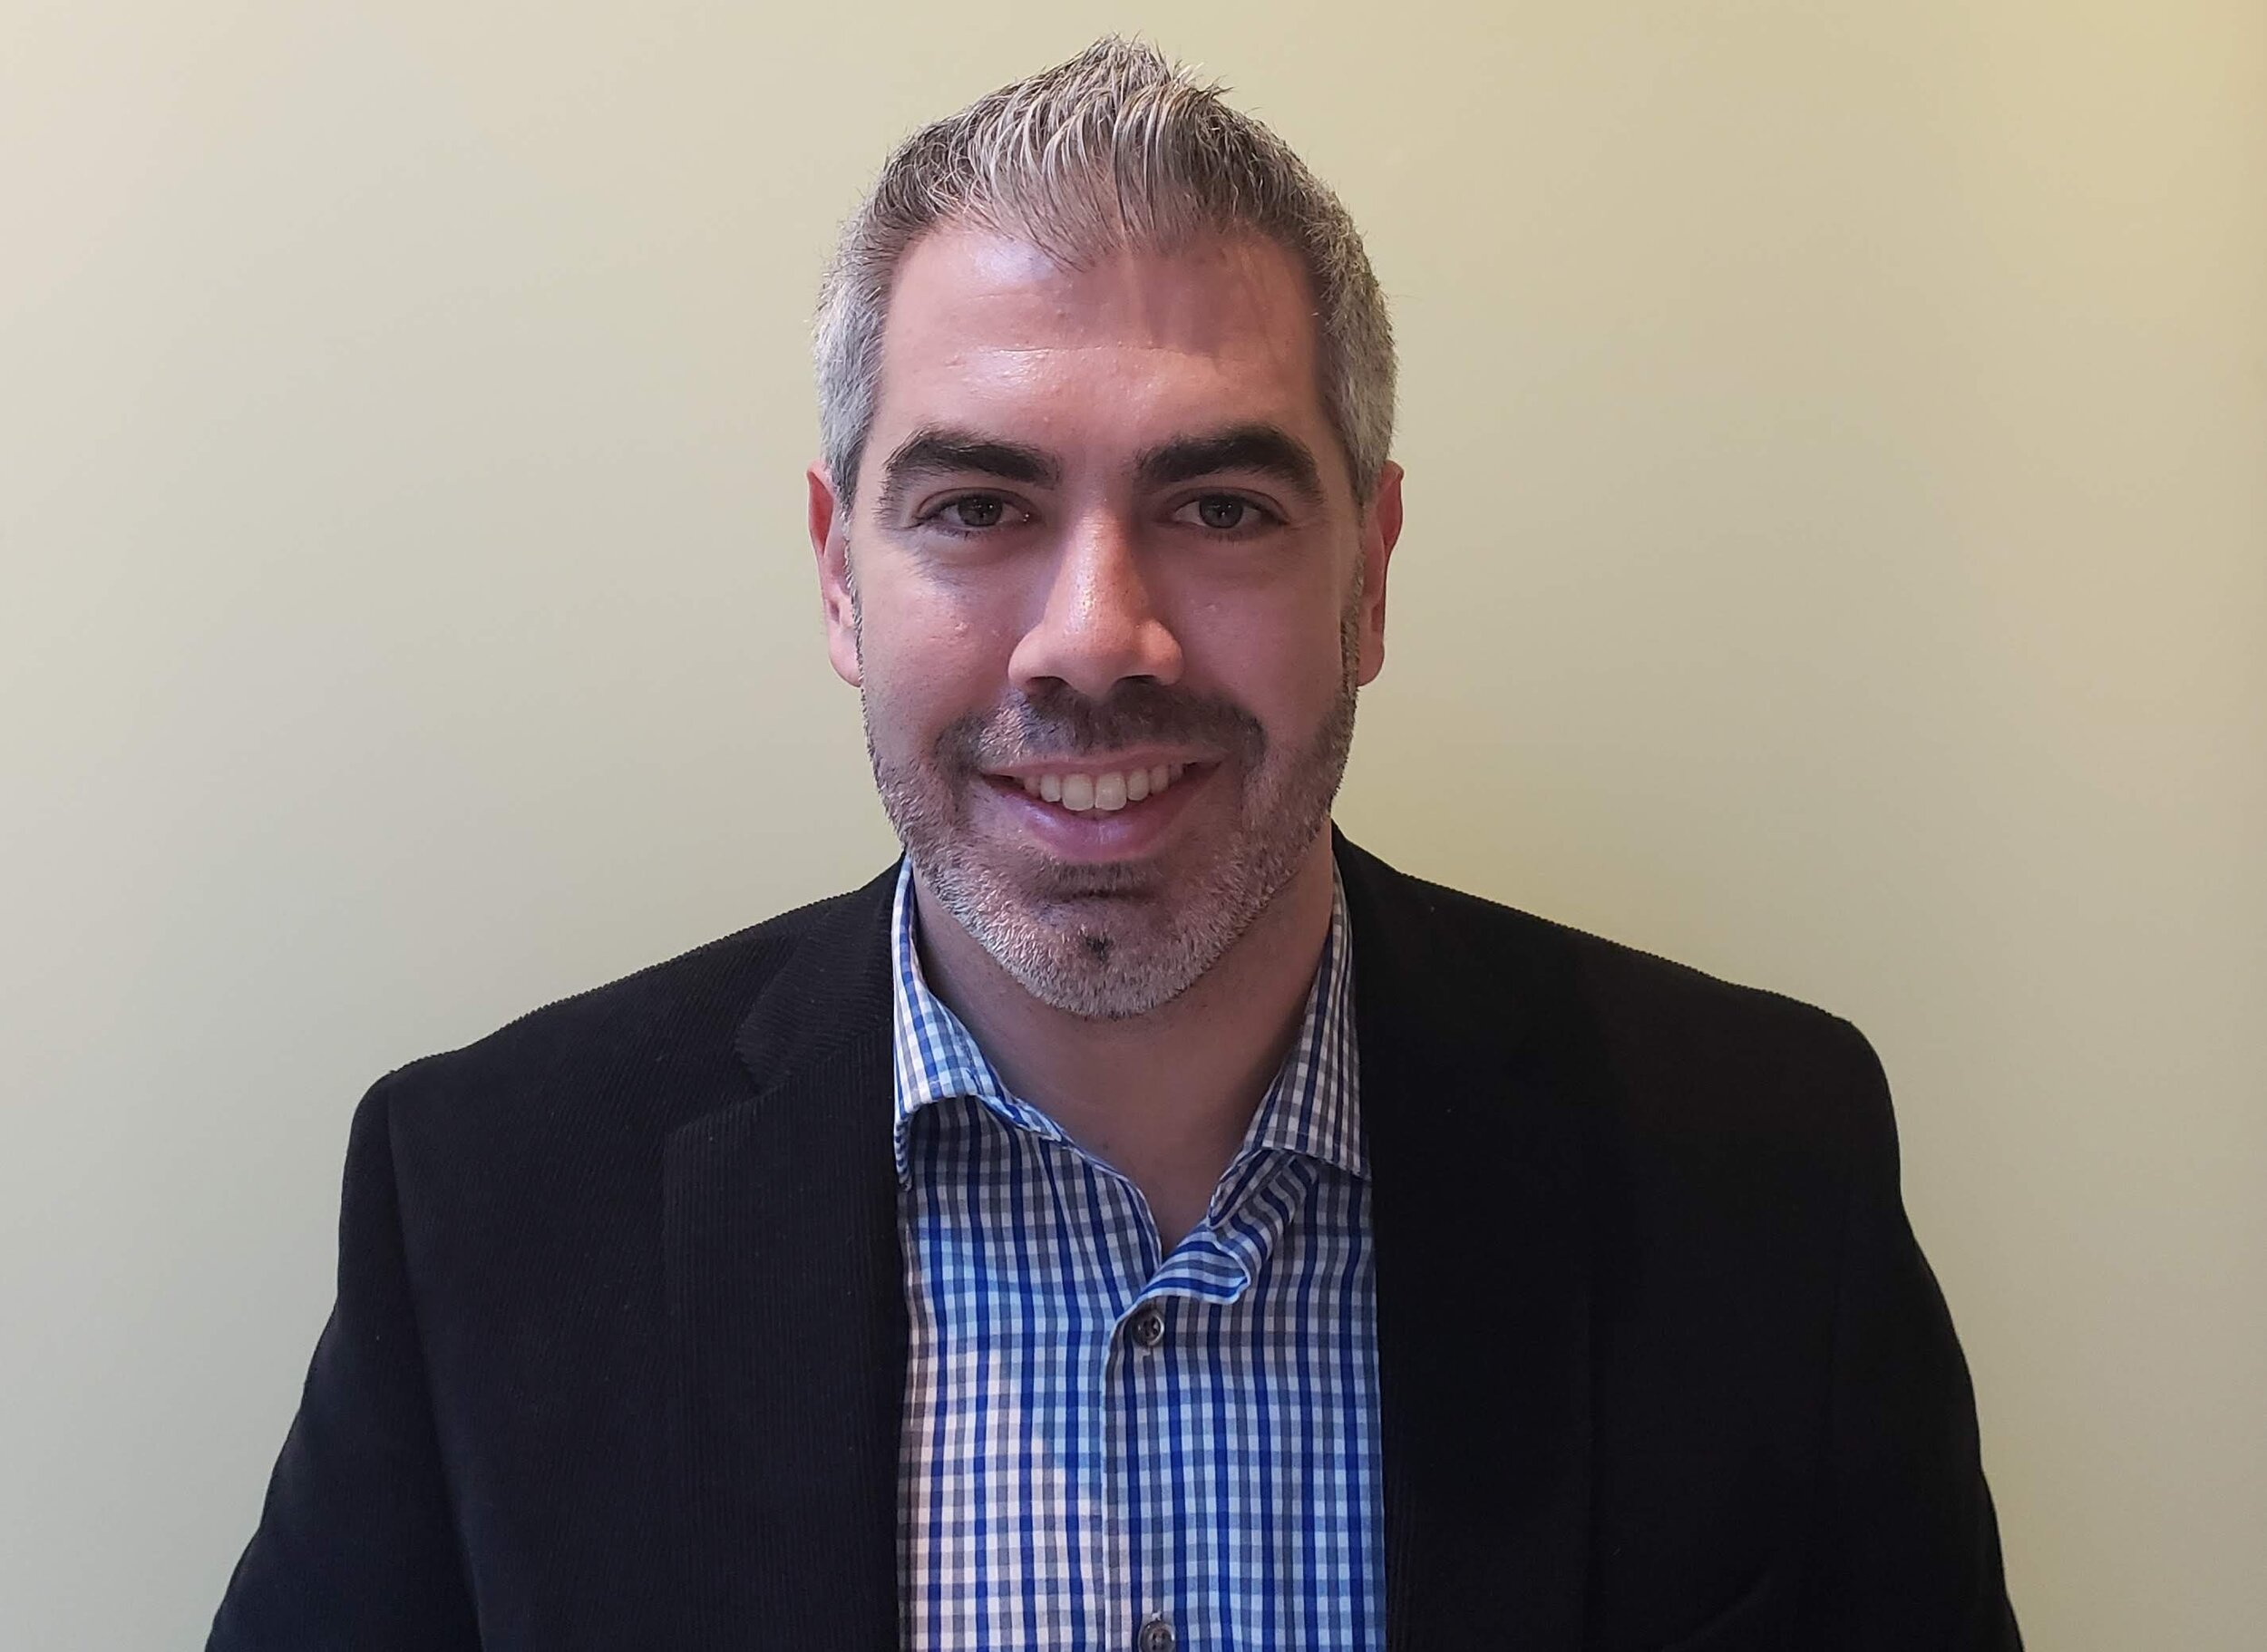 Paul CarrDirector - Paul is in charge of TruMedia's content and client support efforts, and he hosts the Expected Value podcast. Prior to joining TruMedia in 2018, Paul was a Senior Researcher in ESPN's Stats & Information Group where he wore many hats, most notably as ESPN's lead soccer researcher.